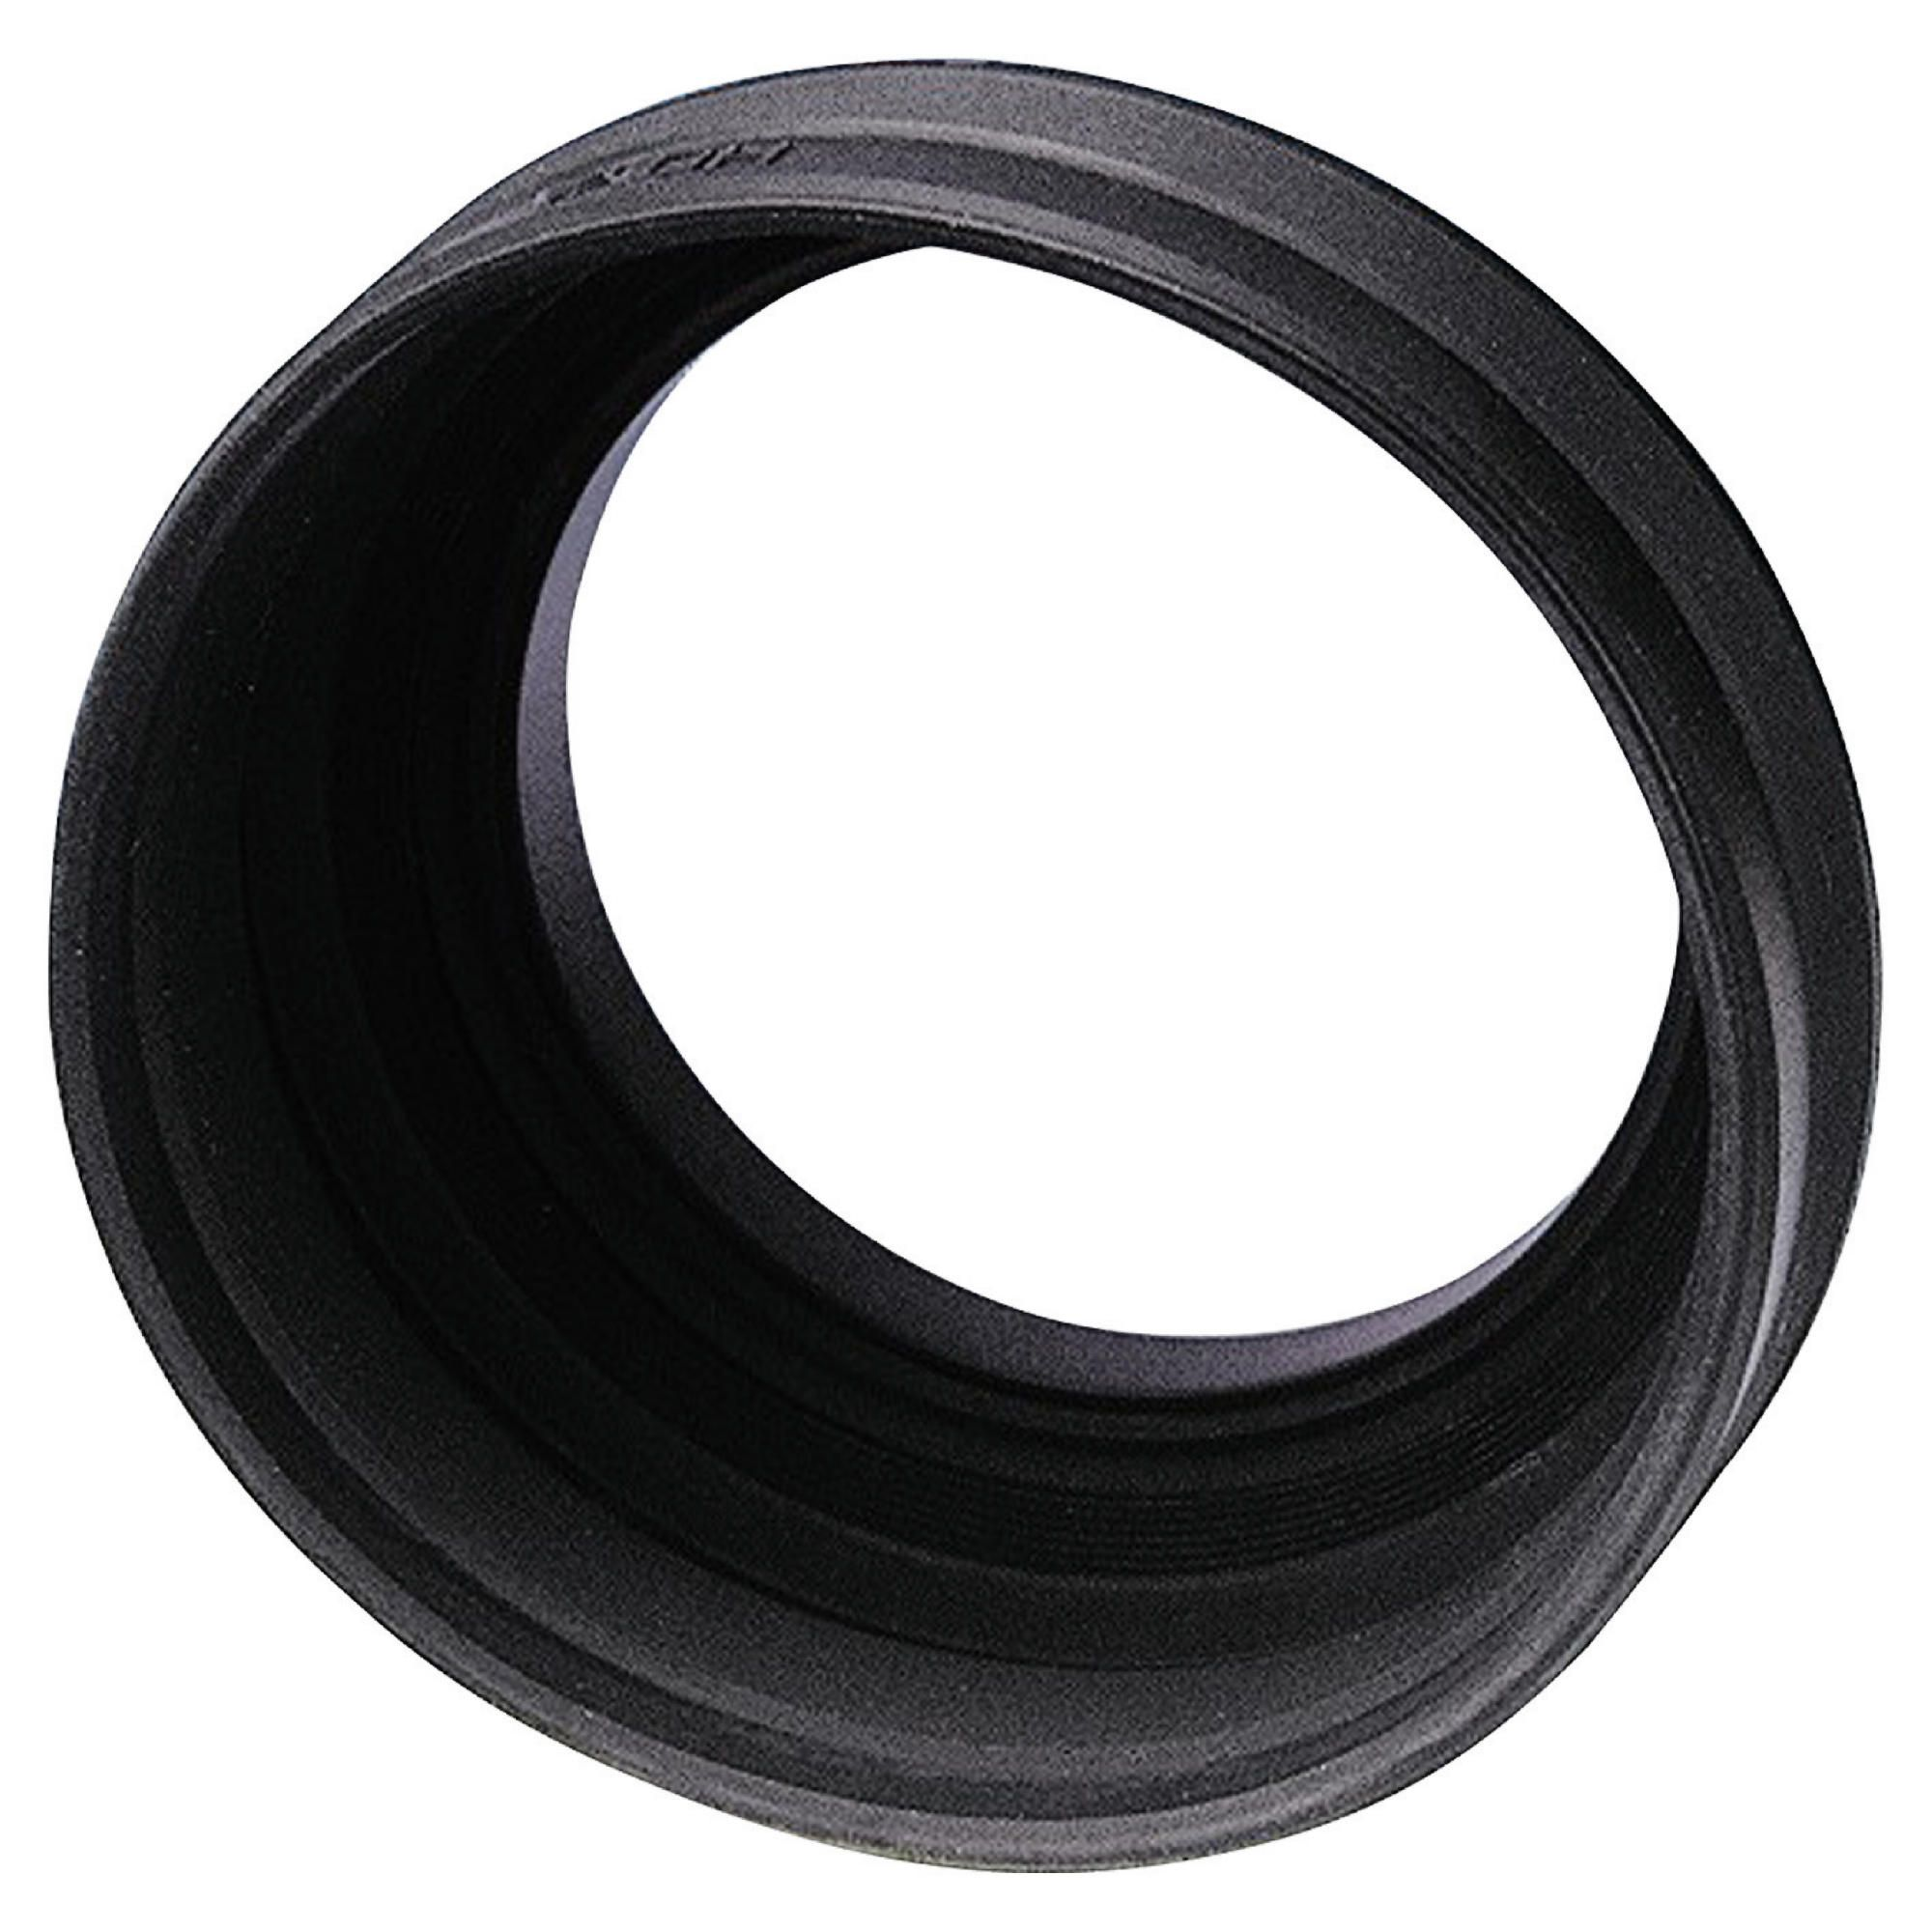 Hama Rubber Lens Hood Telematic S 49 mm